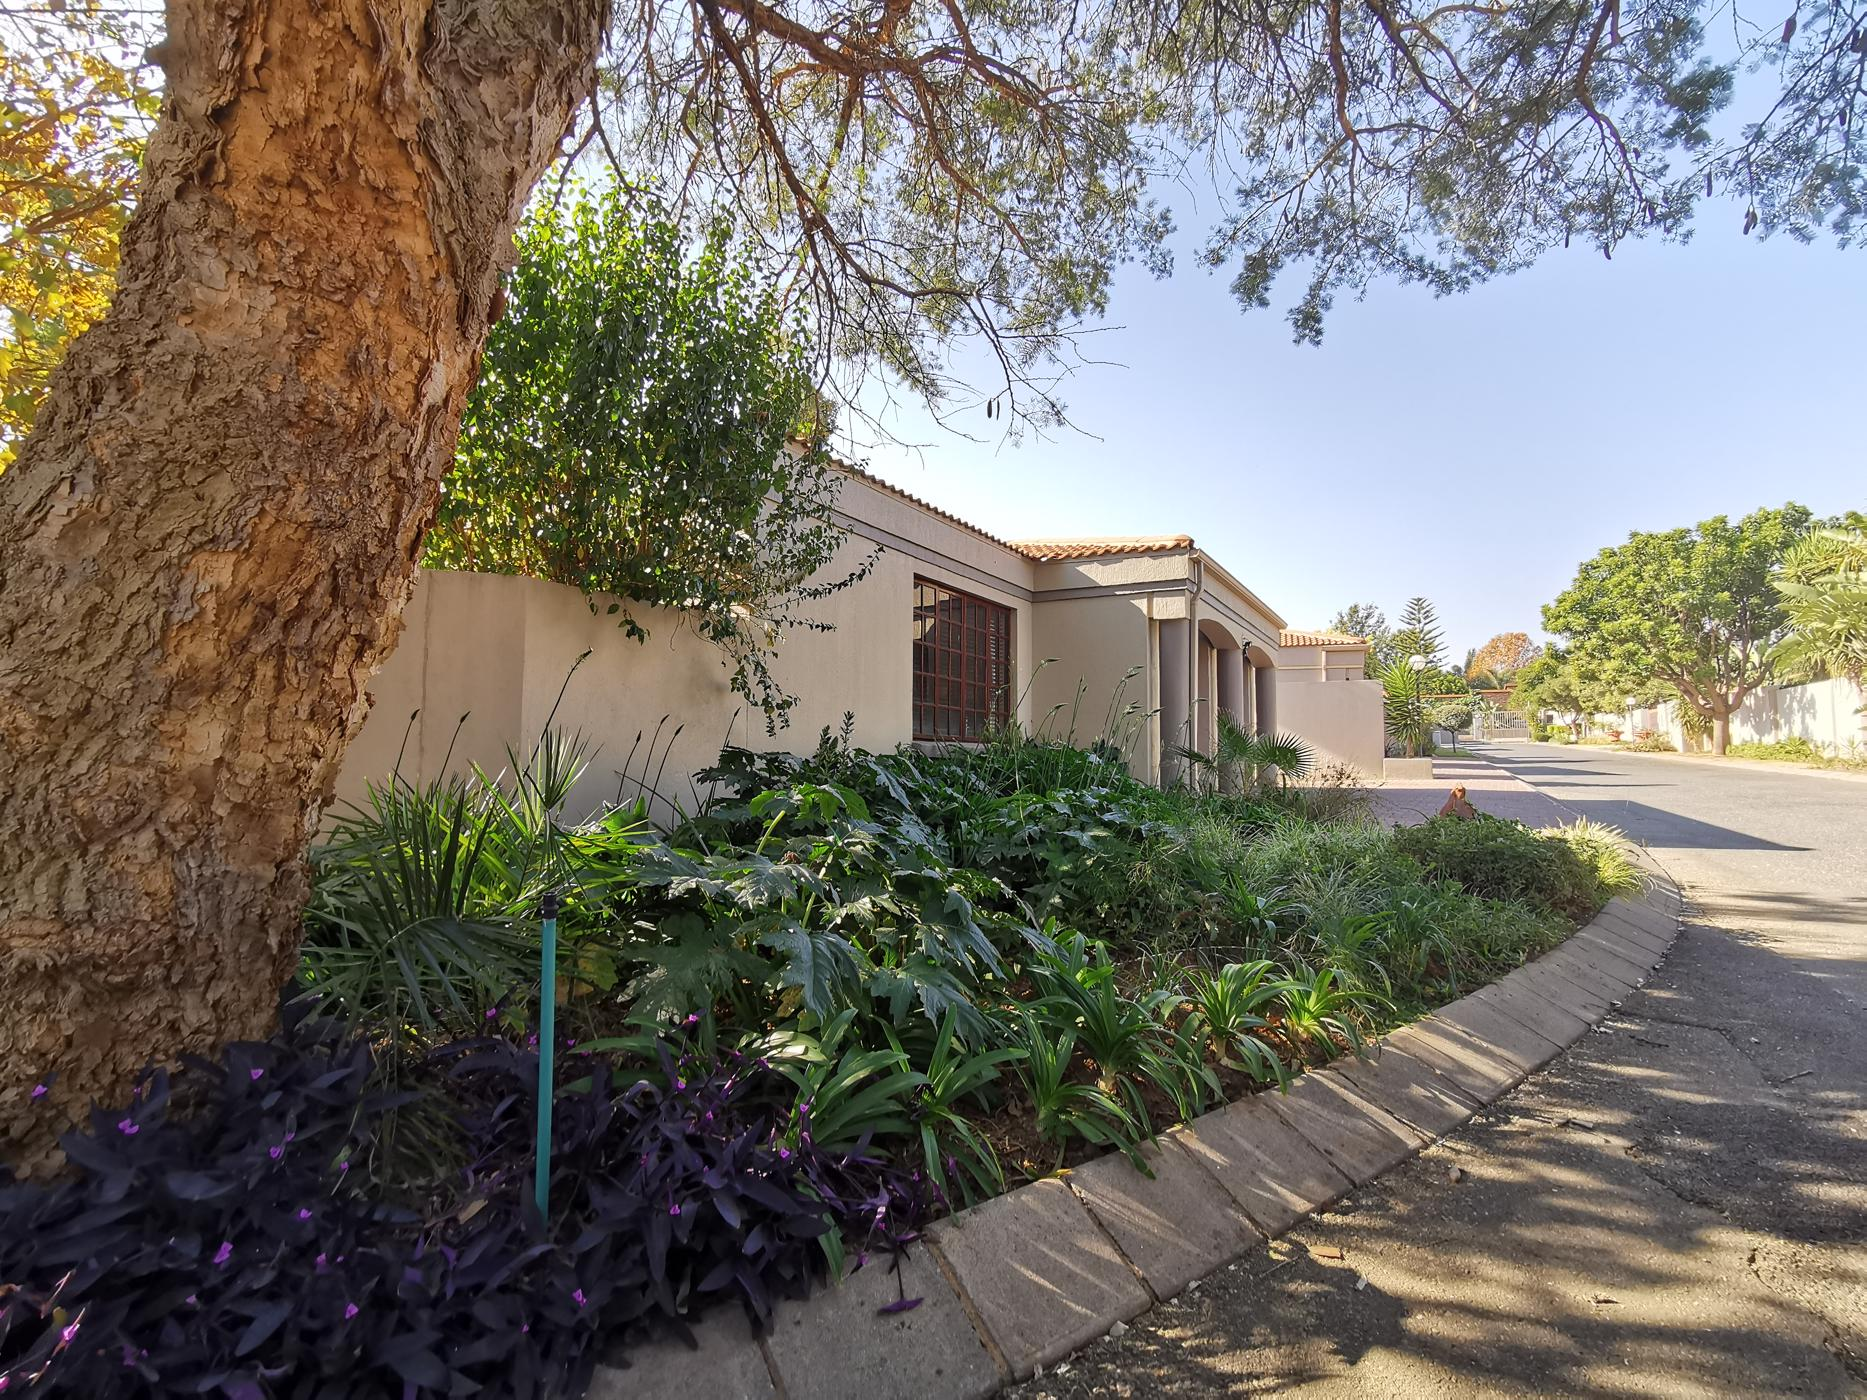 https://listing.pamgolding.co.za/images/properties/201906/1385242/H/1385242_H_31.jpg